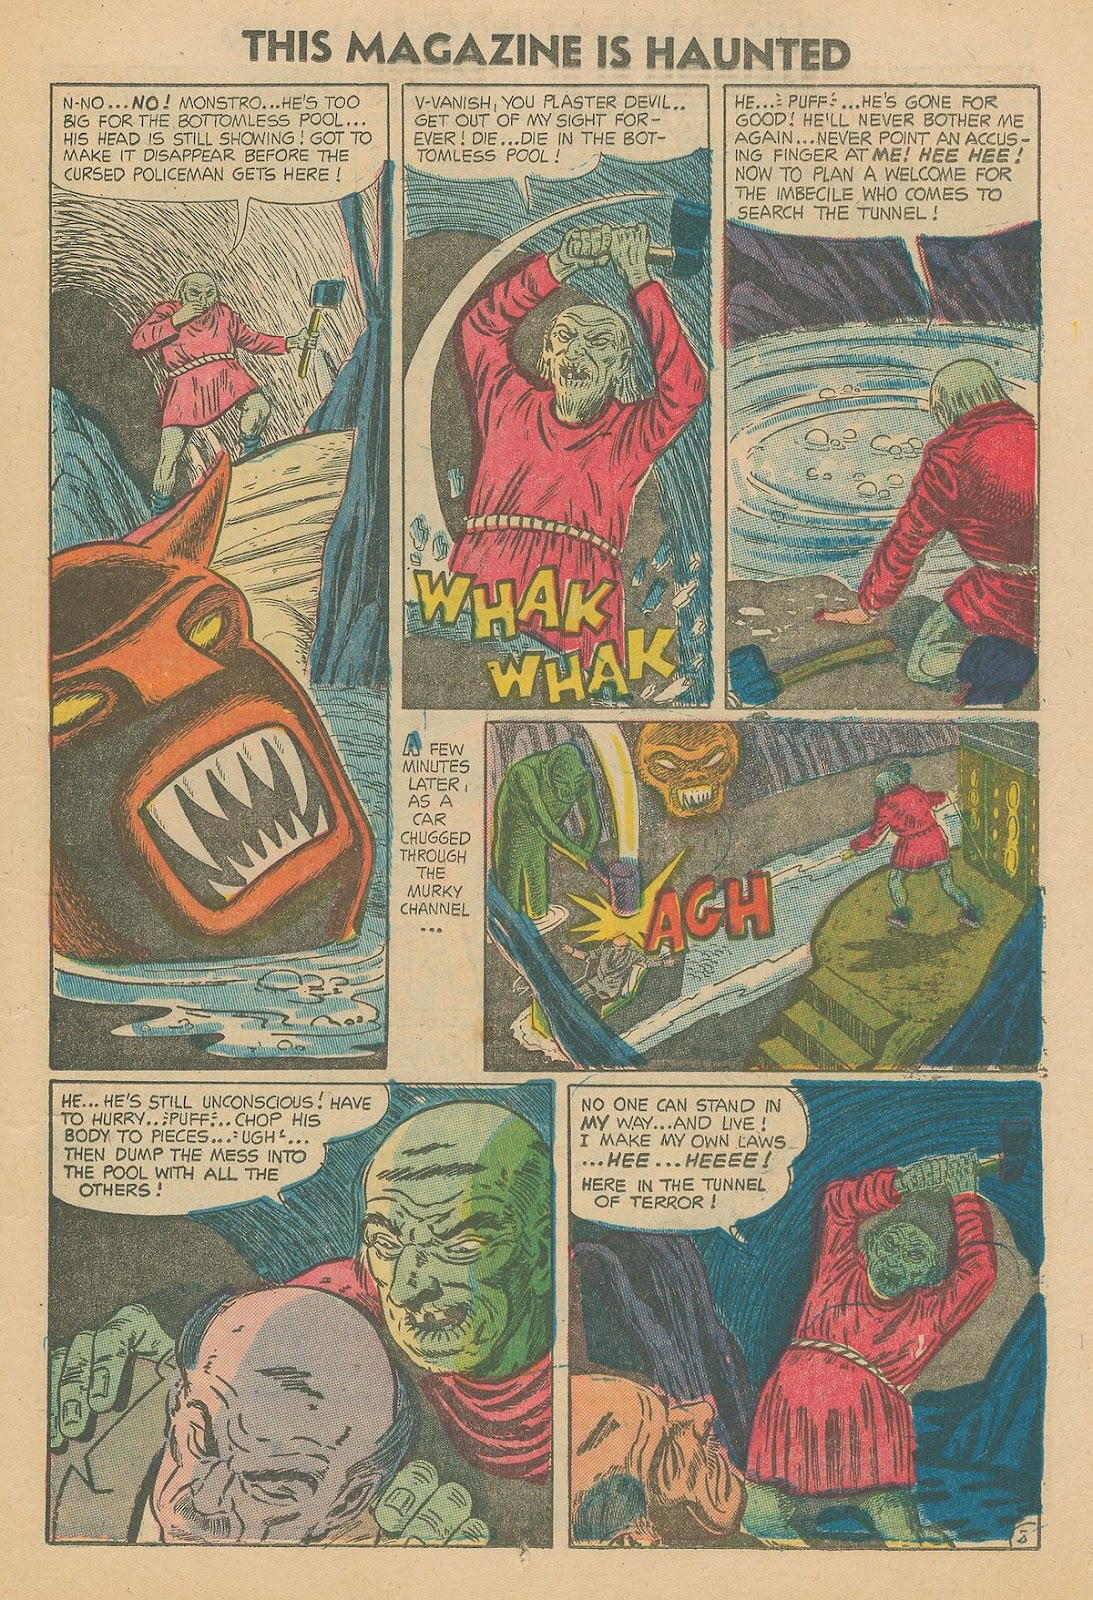 Read online This Magazine Is Haunted comic -  Issue #21 - 11